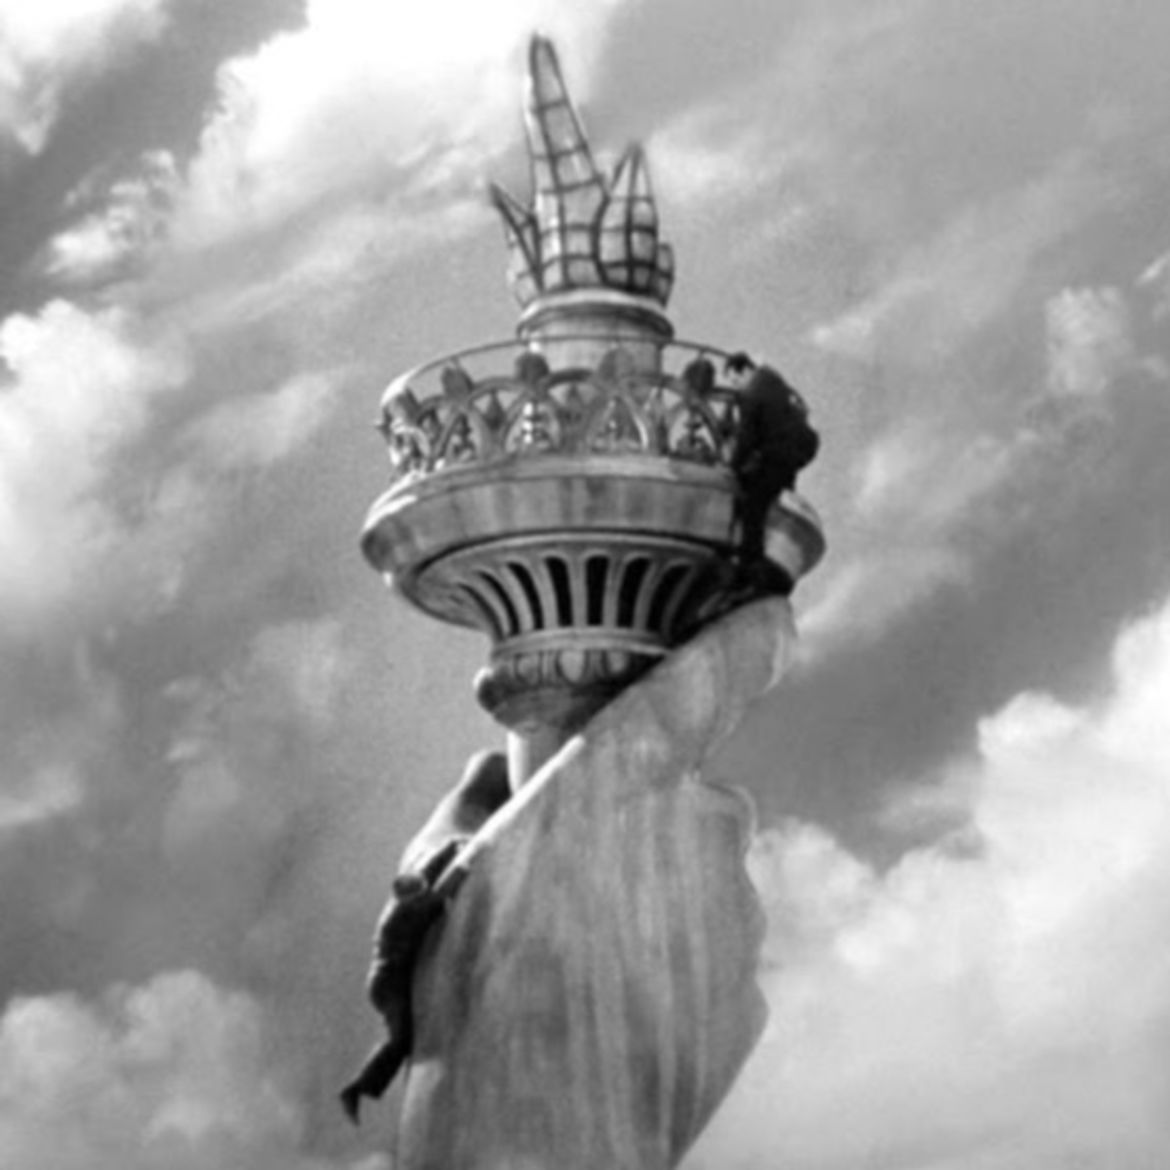 Cover Photo: Scene at the Statue of Liberty, from ending of 'Saboteur,' Alfred Hitchcock 1942.